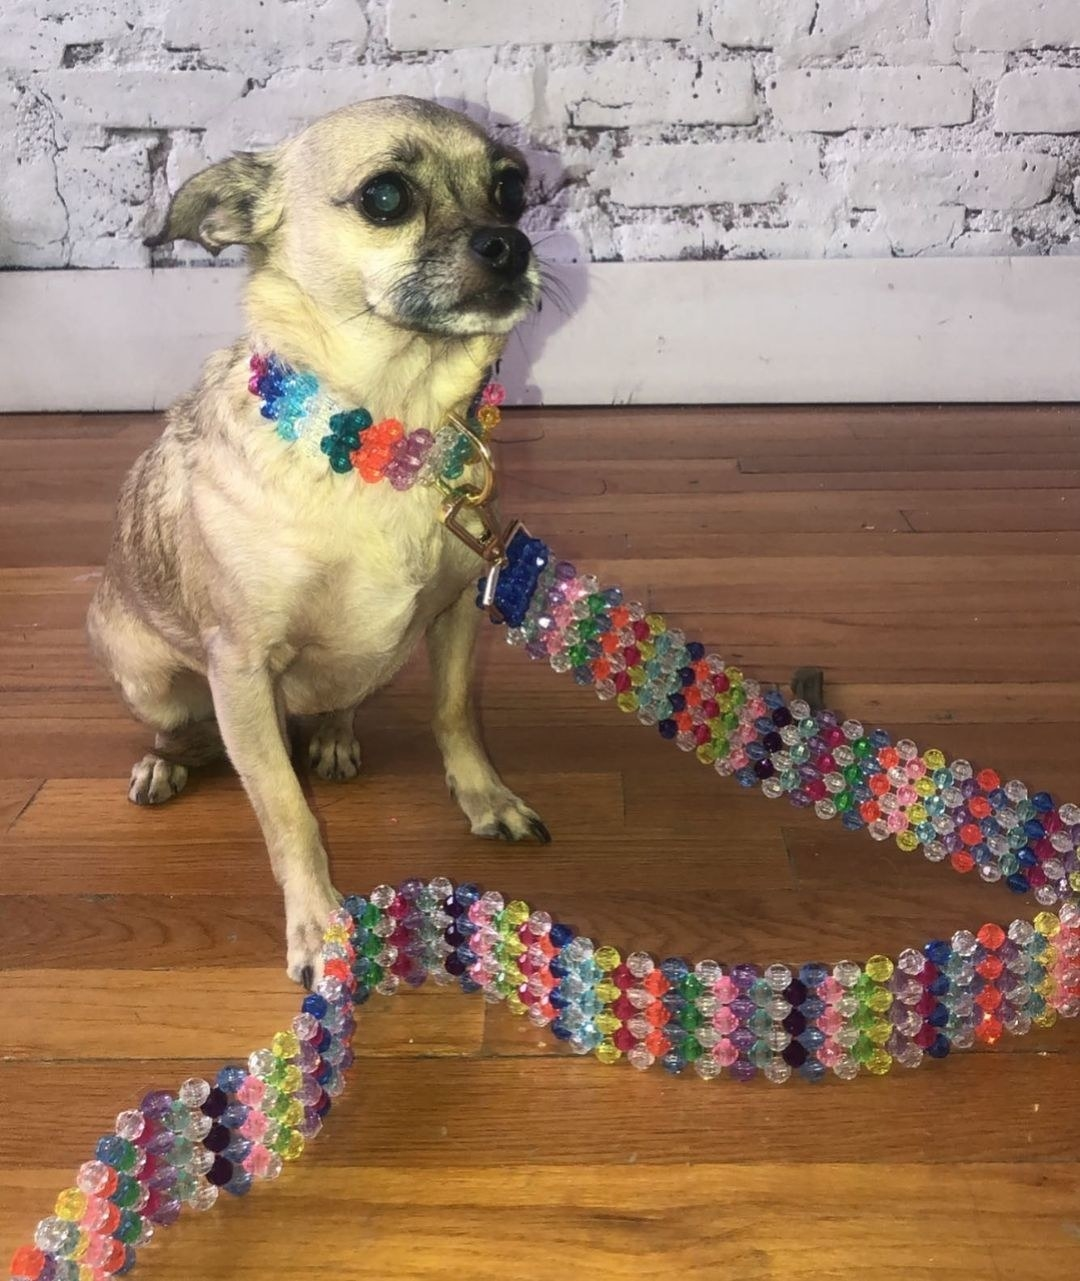 A chihuahua wearing a colorful beaded collar and matching leash